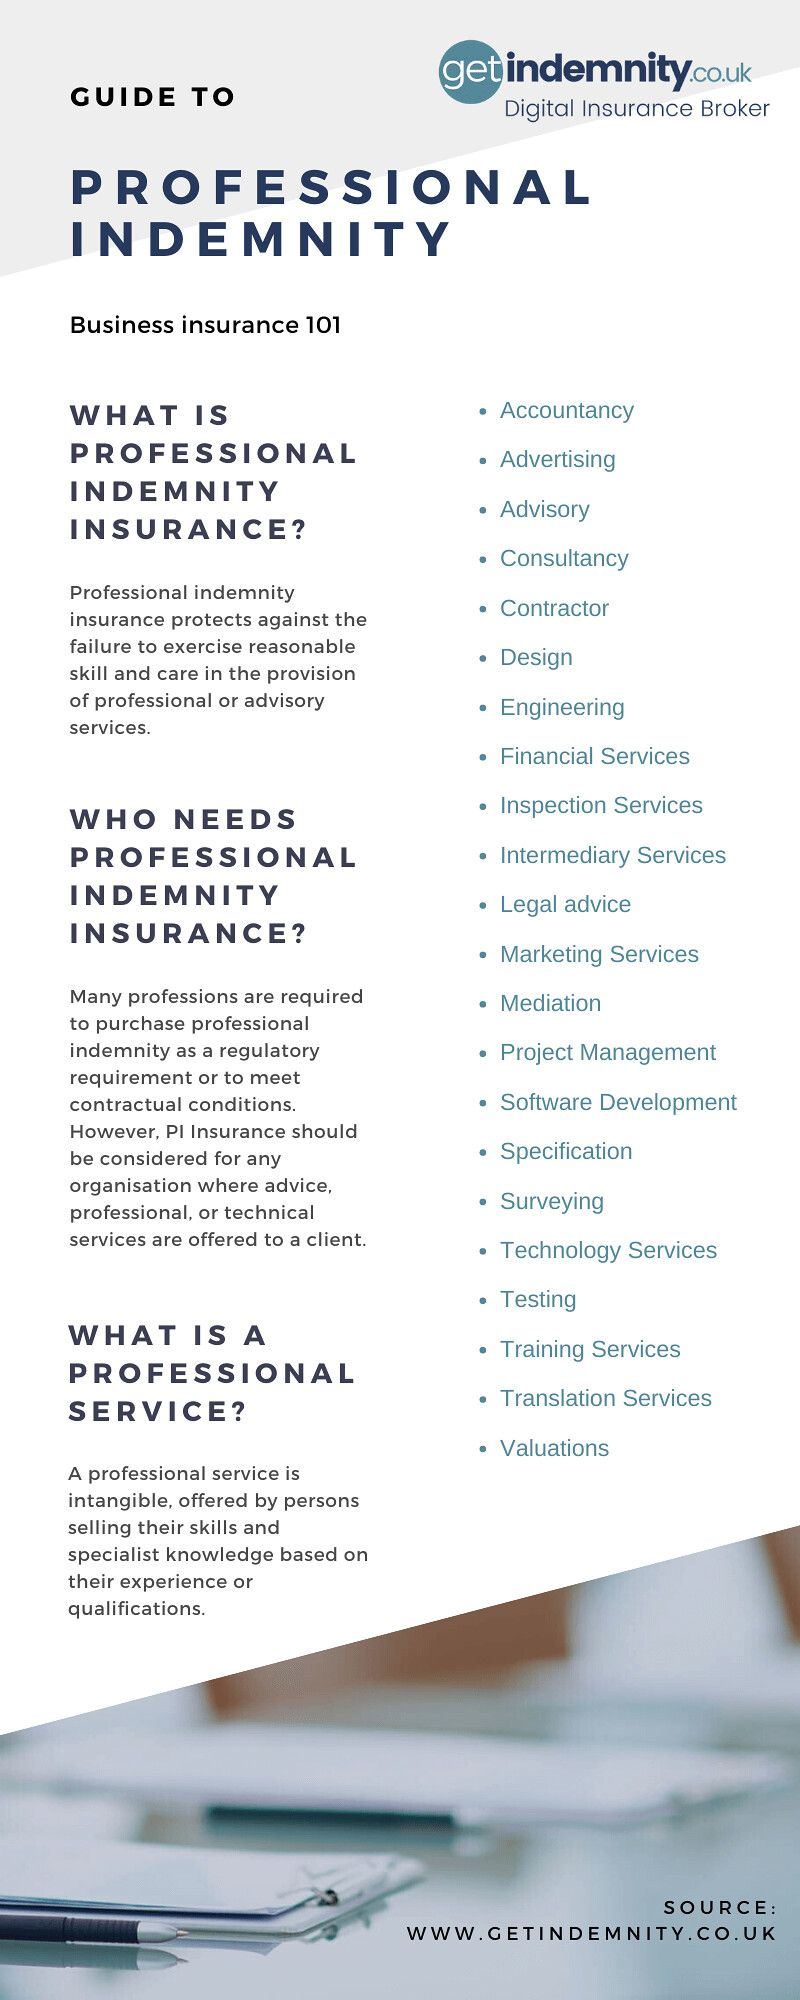 What Professional Indemnity Infographic Professional Indemnity